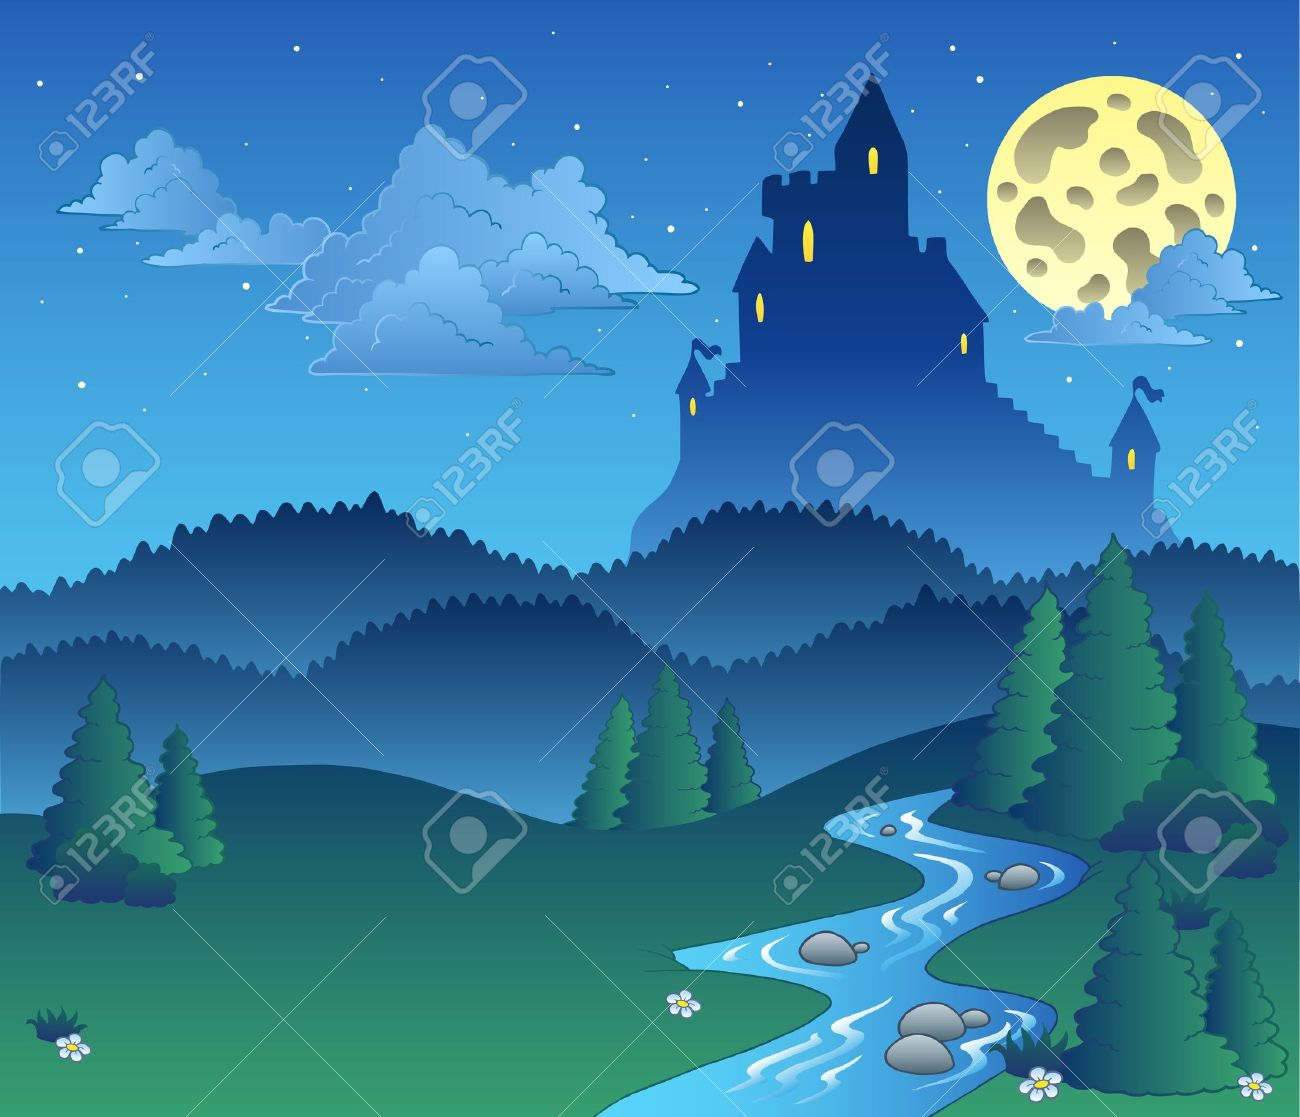 Fairy tale landscape at night  - illustration. Stock Vector - 8350137